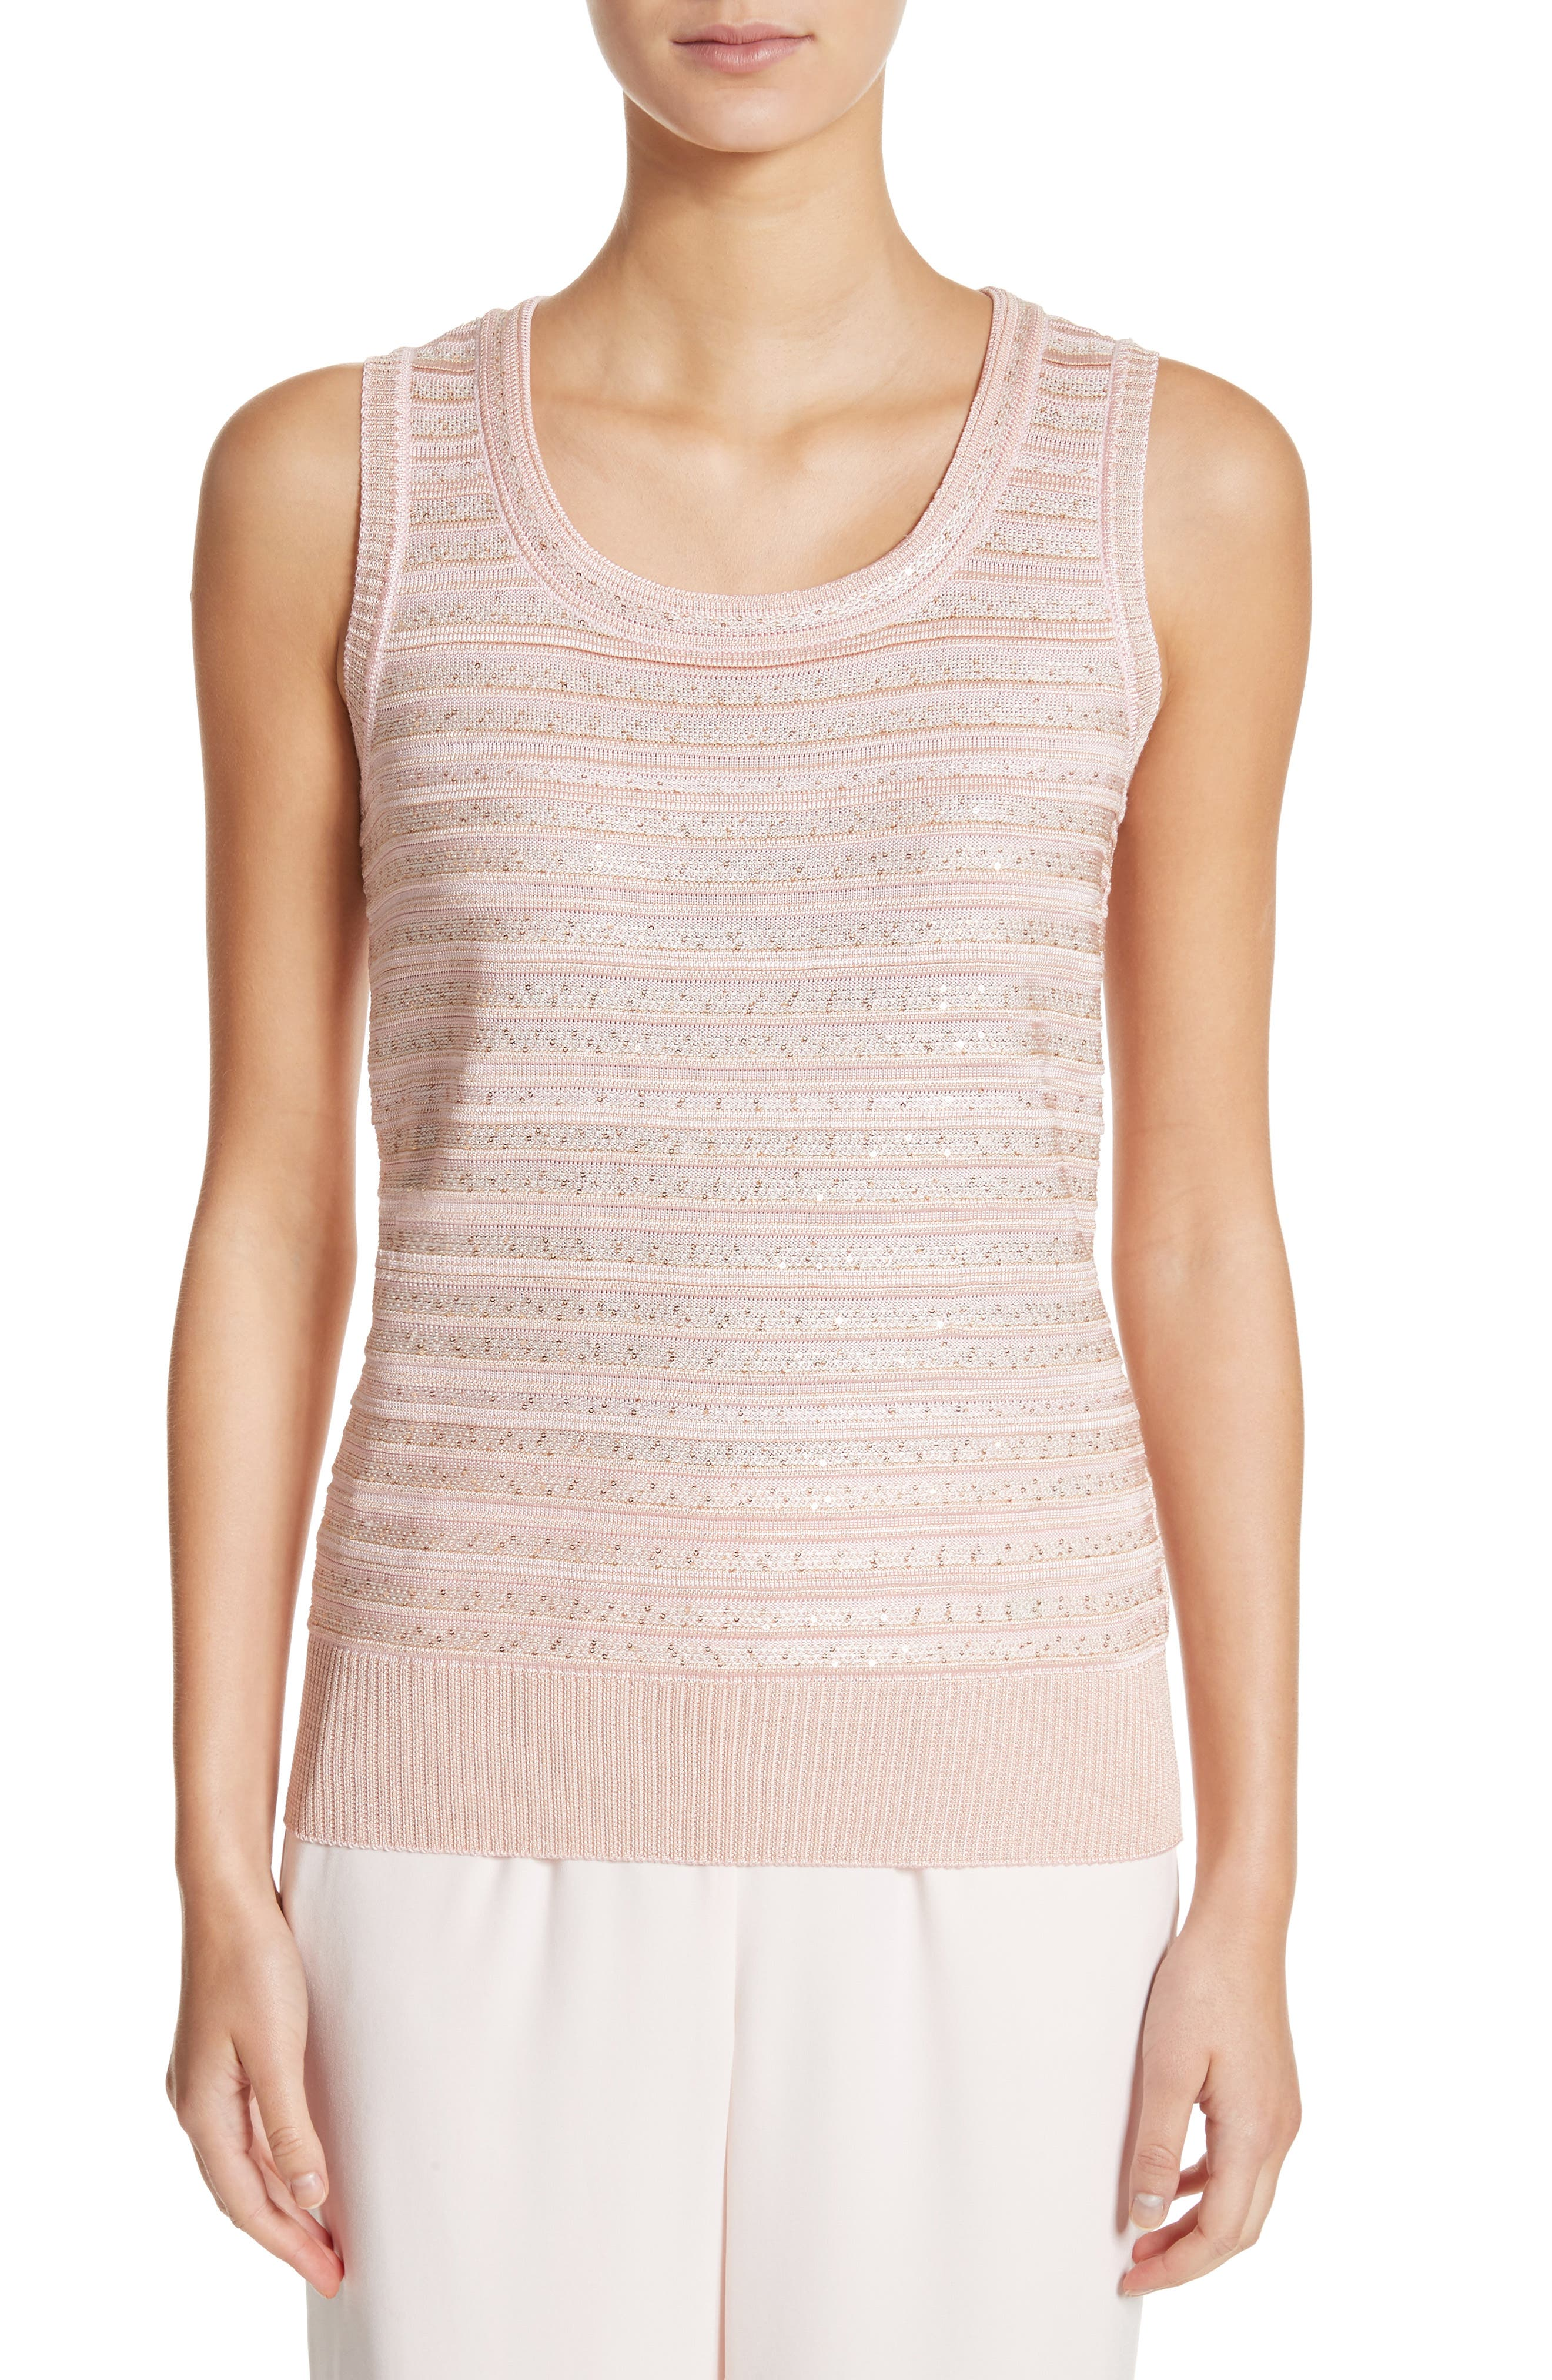 St. John Collection Welted Sequin Knit Shell